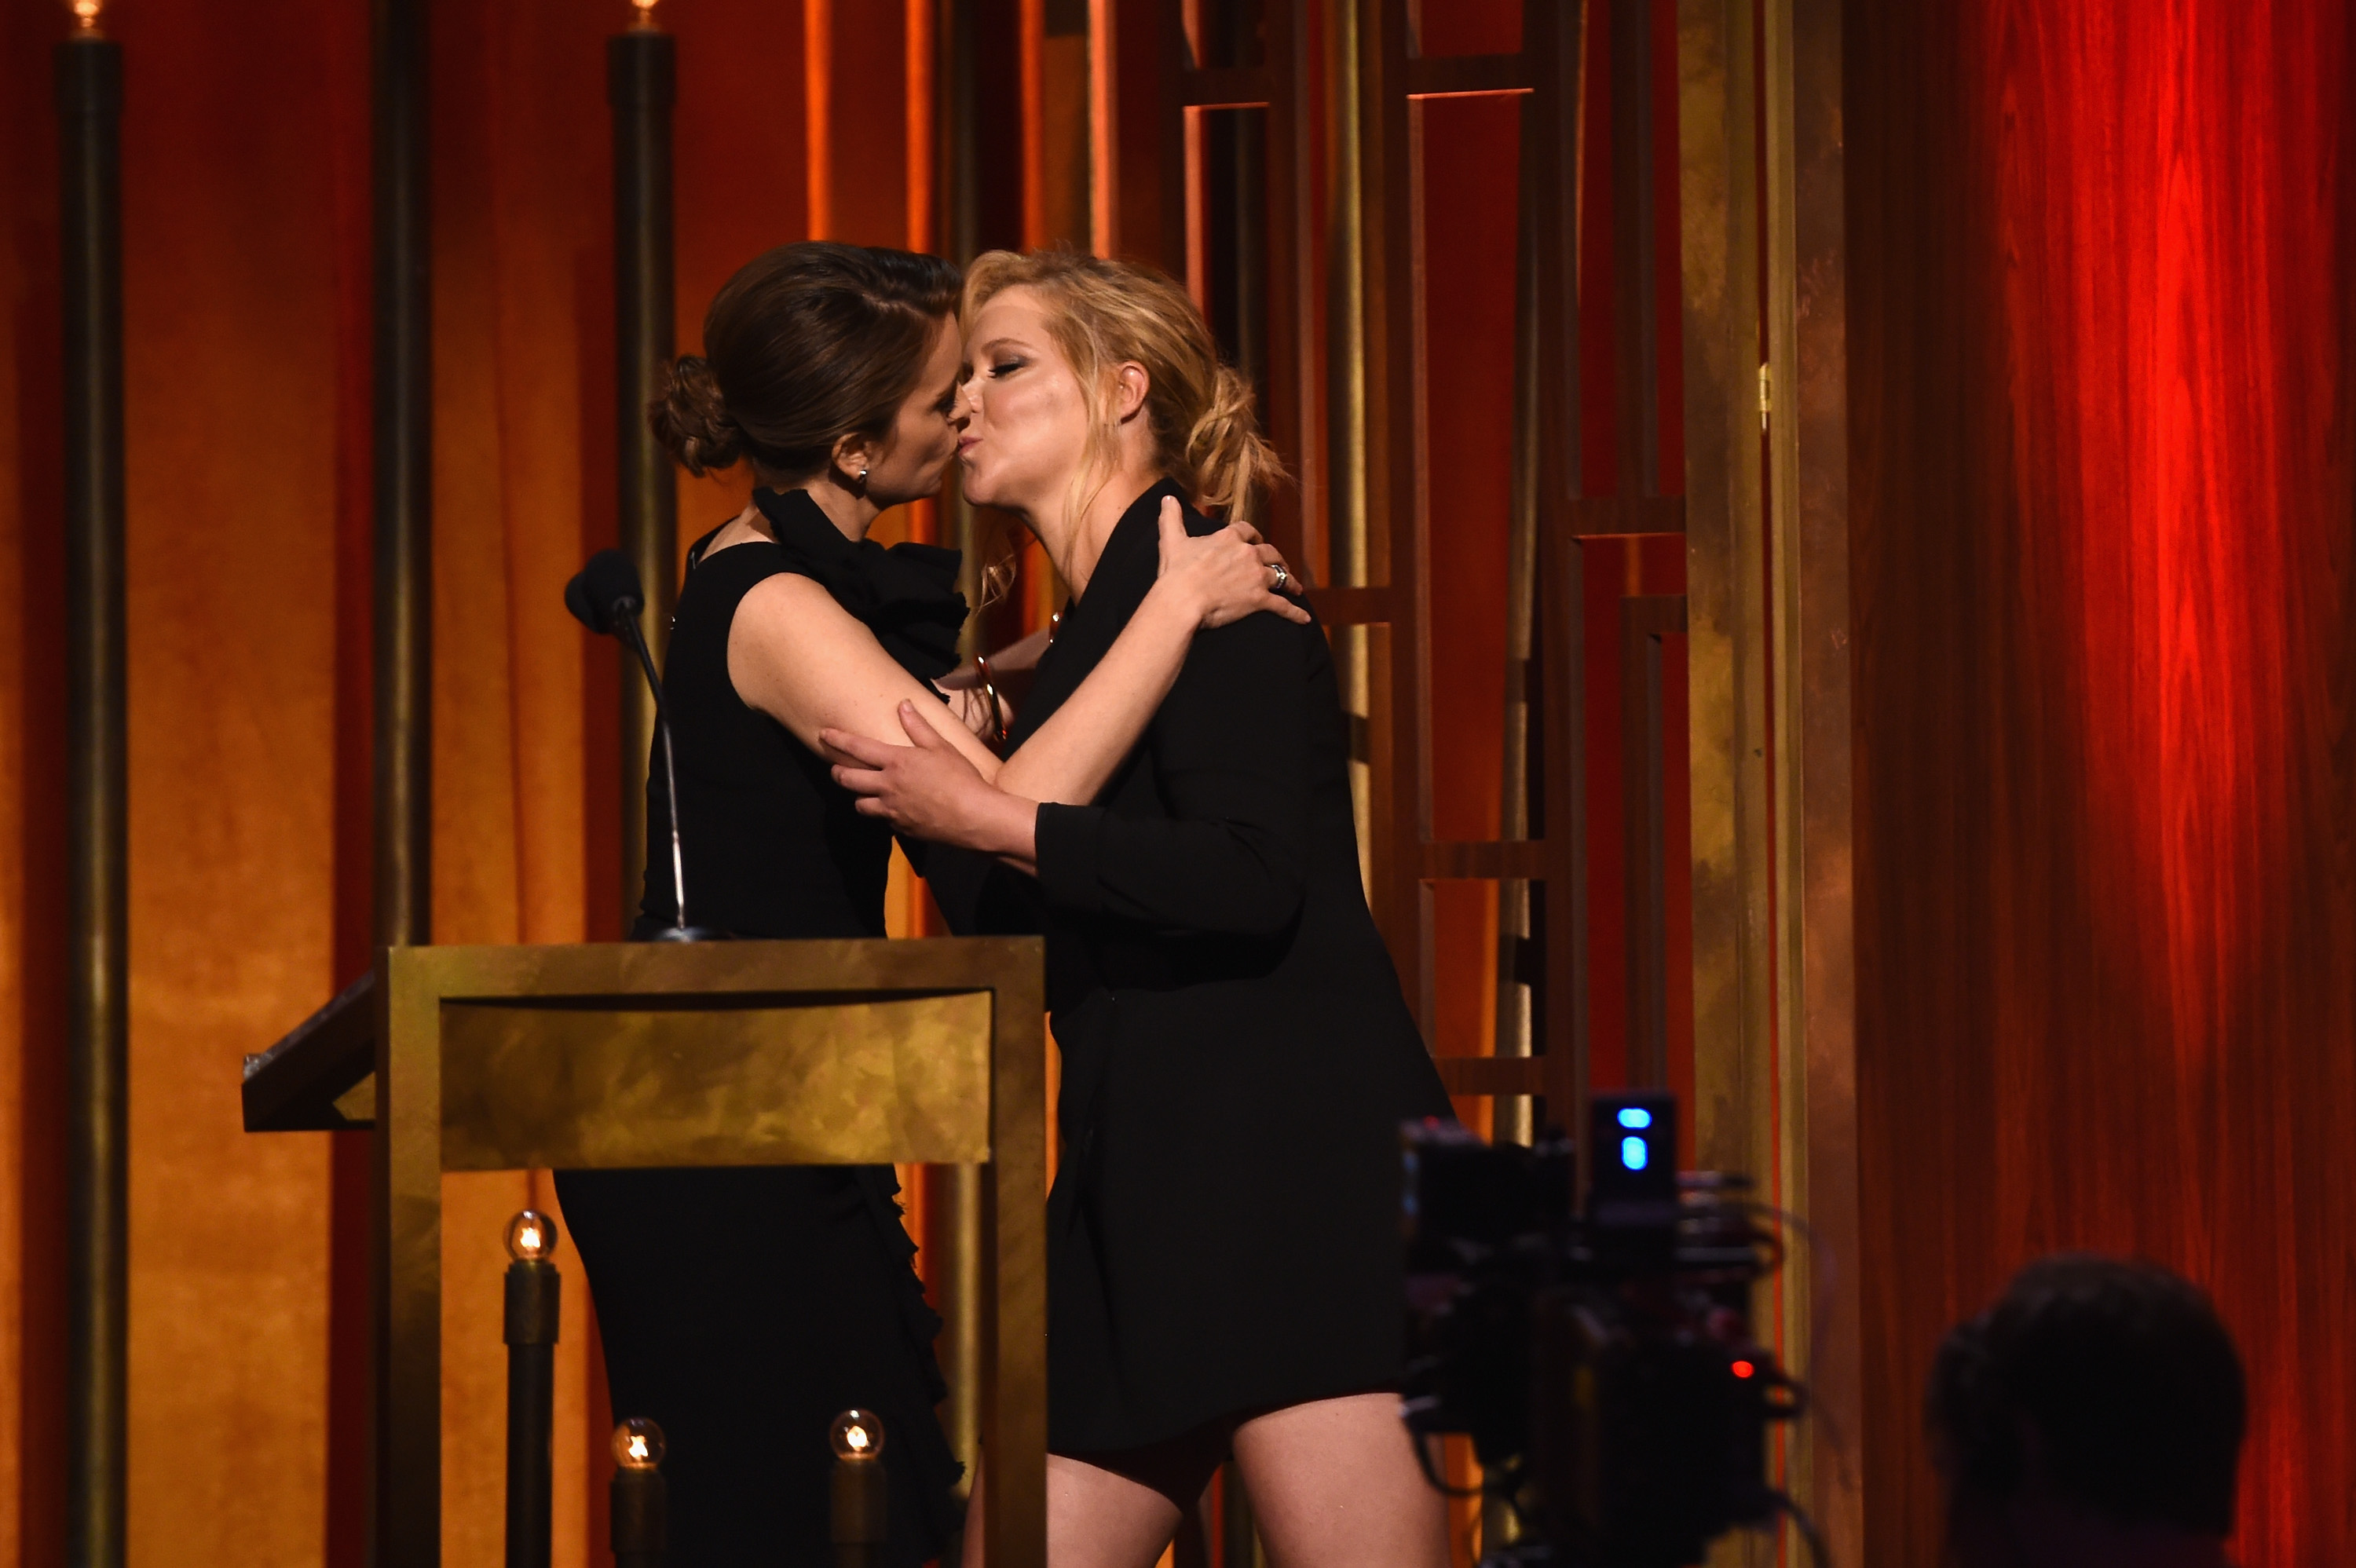 (L-R) Comedians  Tina Fey and Amy Schumer kiss onstage at The 74th Annual Peabody Awards Ceremony at Cipriani Wall Street on May 31, 2015 in New York City.